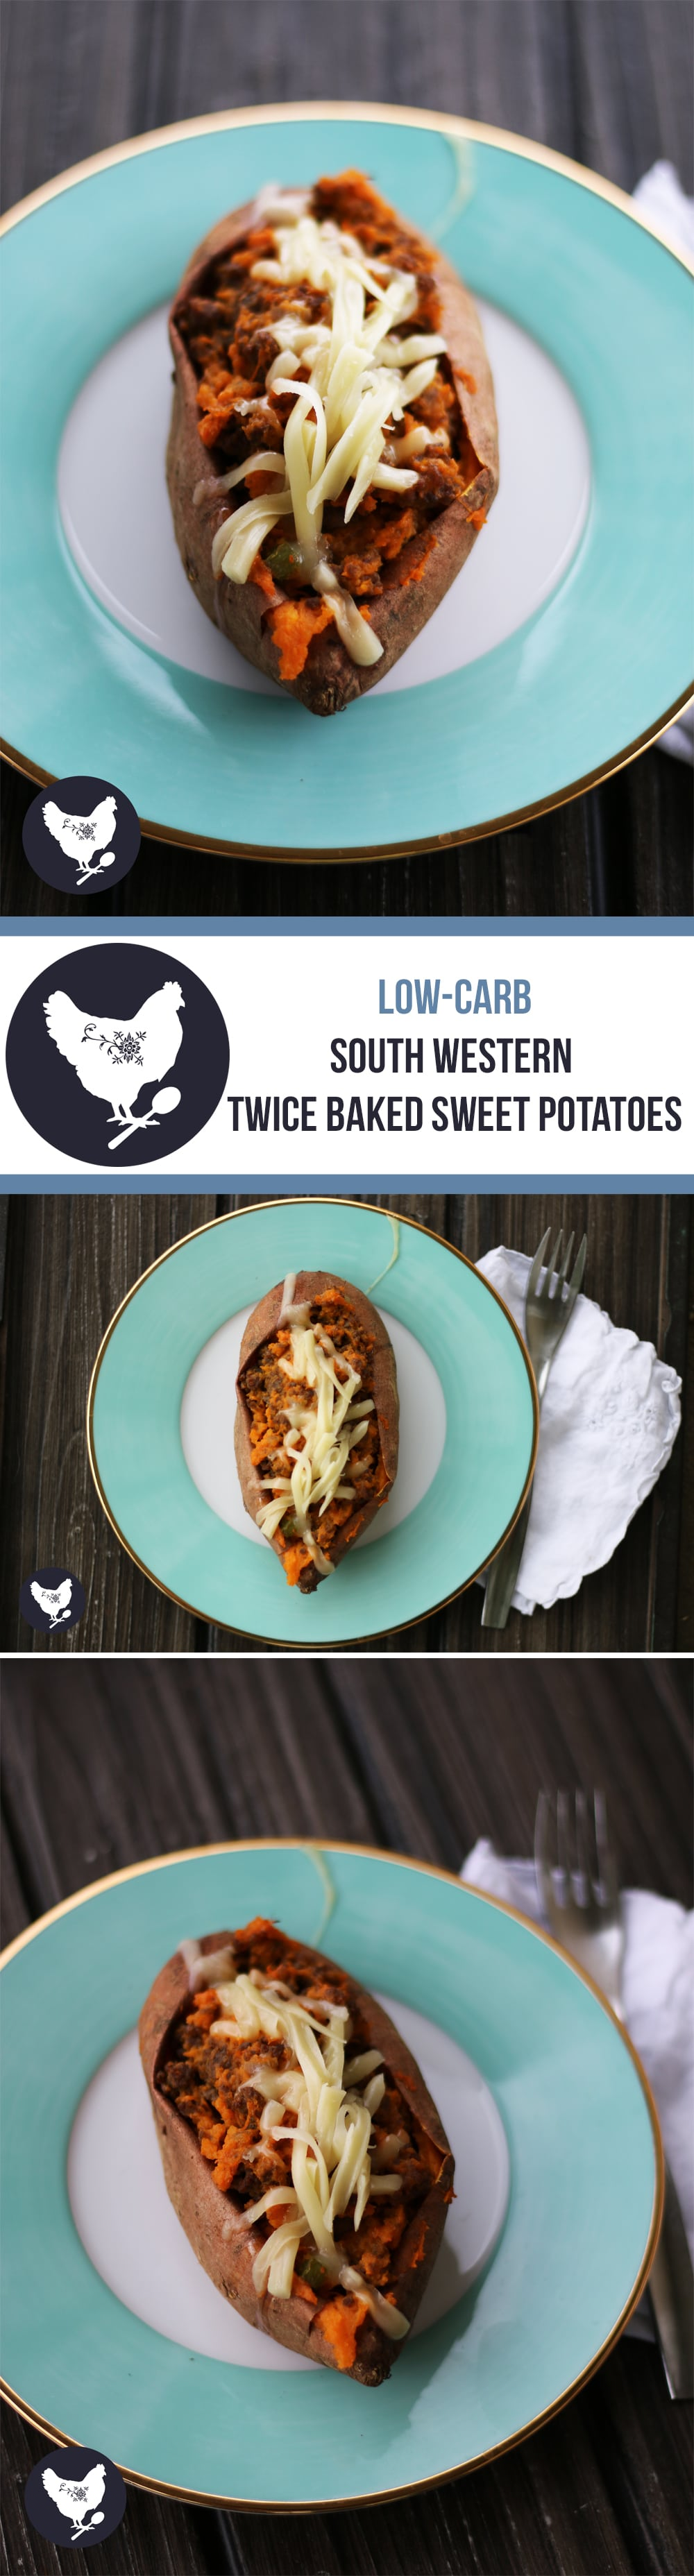 South Western Twice-Baked Sweet Potatoes | Get this scrumptious low-carb recipe from Cosmopolitan Cornbread